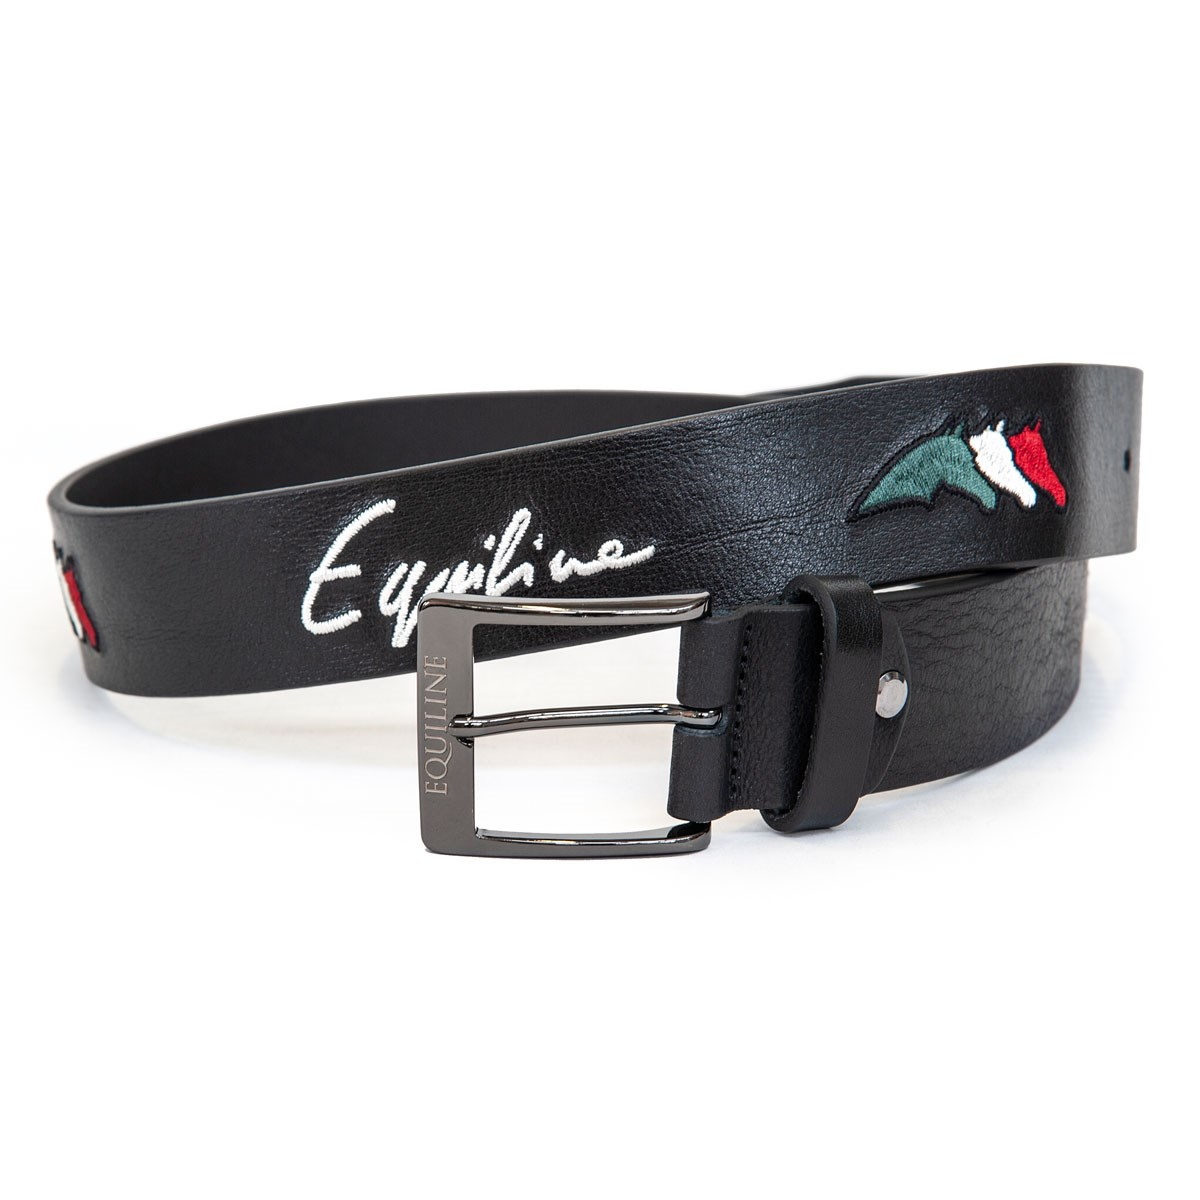 57acd7269 Equiline Logfil Unisex Leather Belt - Black - Redpost Equestrian